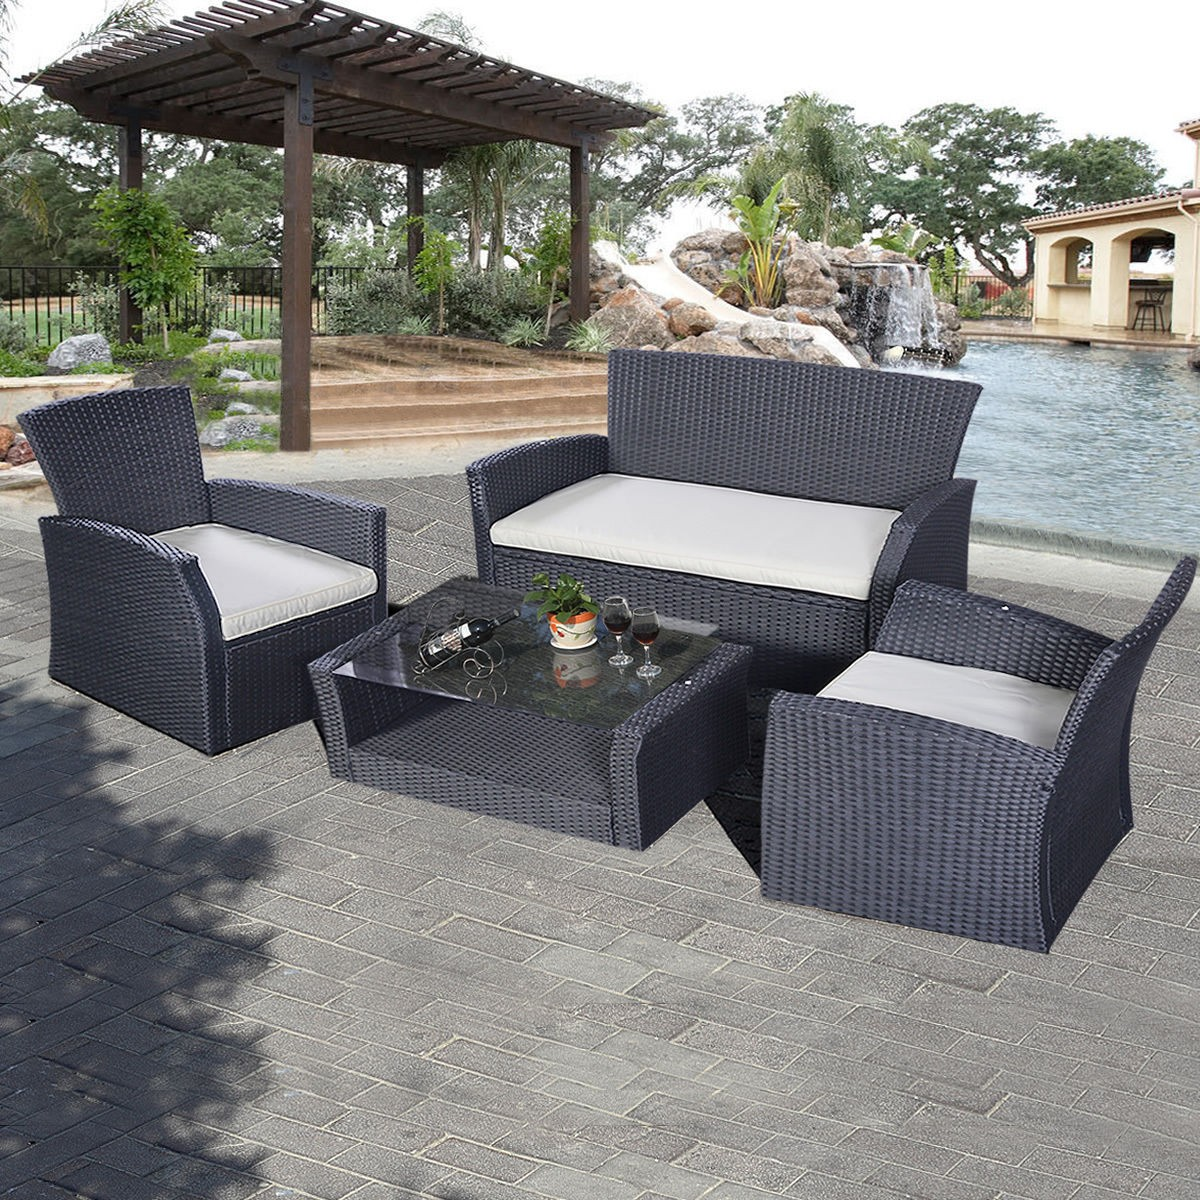 4pcs outdoor patio furniture set wicker garden lawn sofa rattan us rh ebay com ebay.com.au wicker outdoor furniture ebay outdoor wicker furniture sale